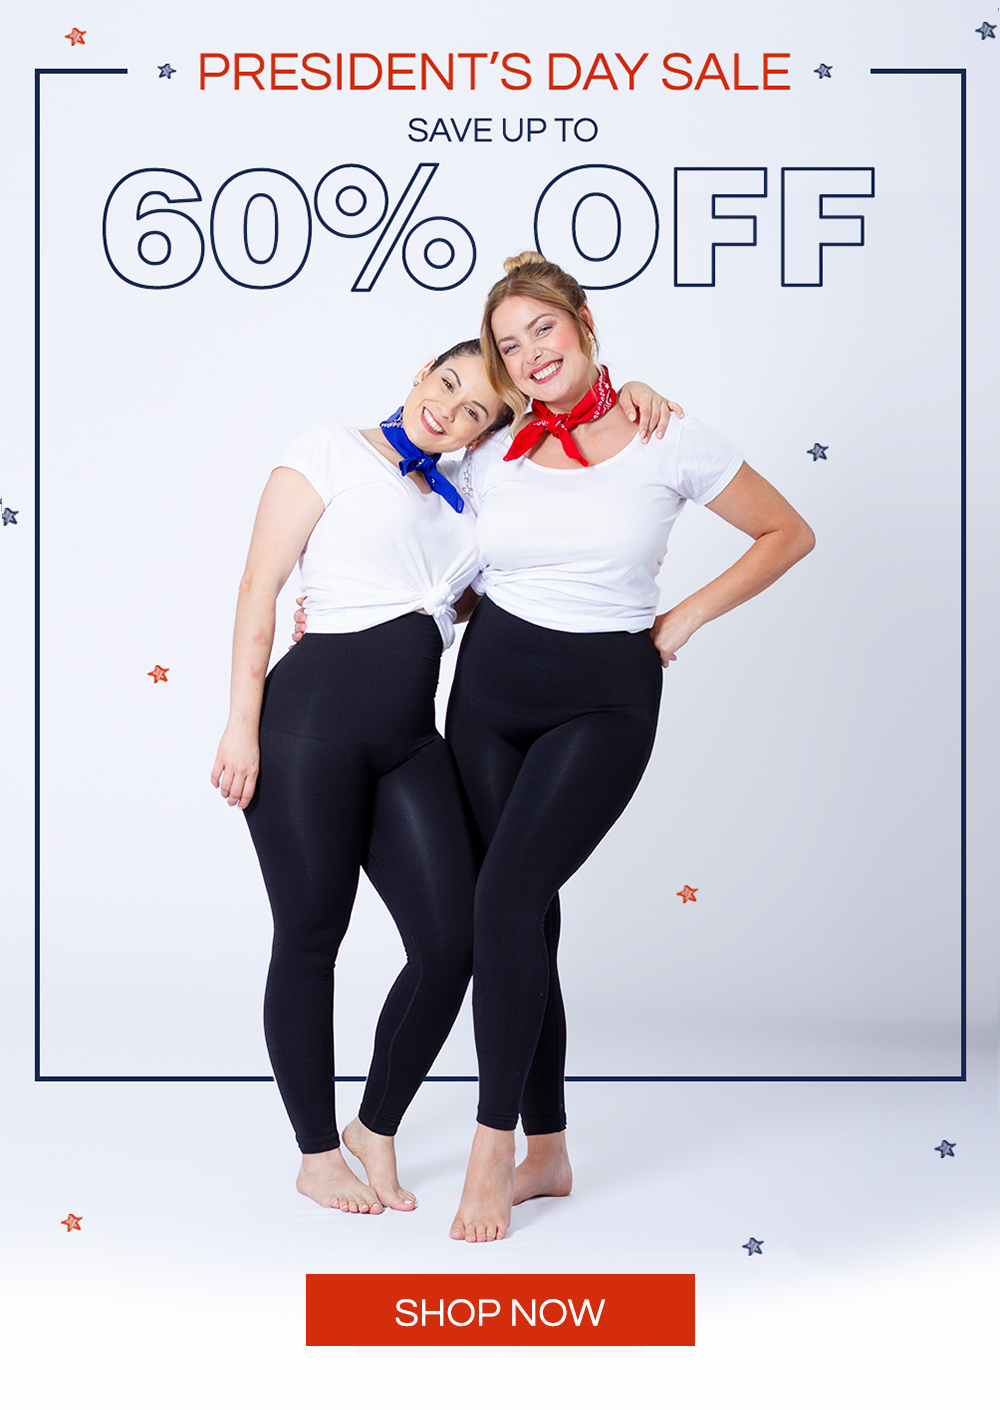 0ef538d84b20f Pile up the presidential savings with up to 60% off must-have shapewear  collections this President s Day.